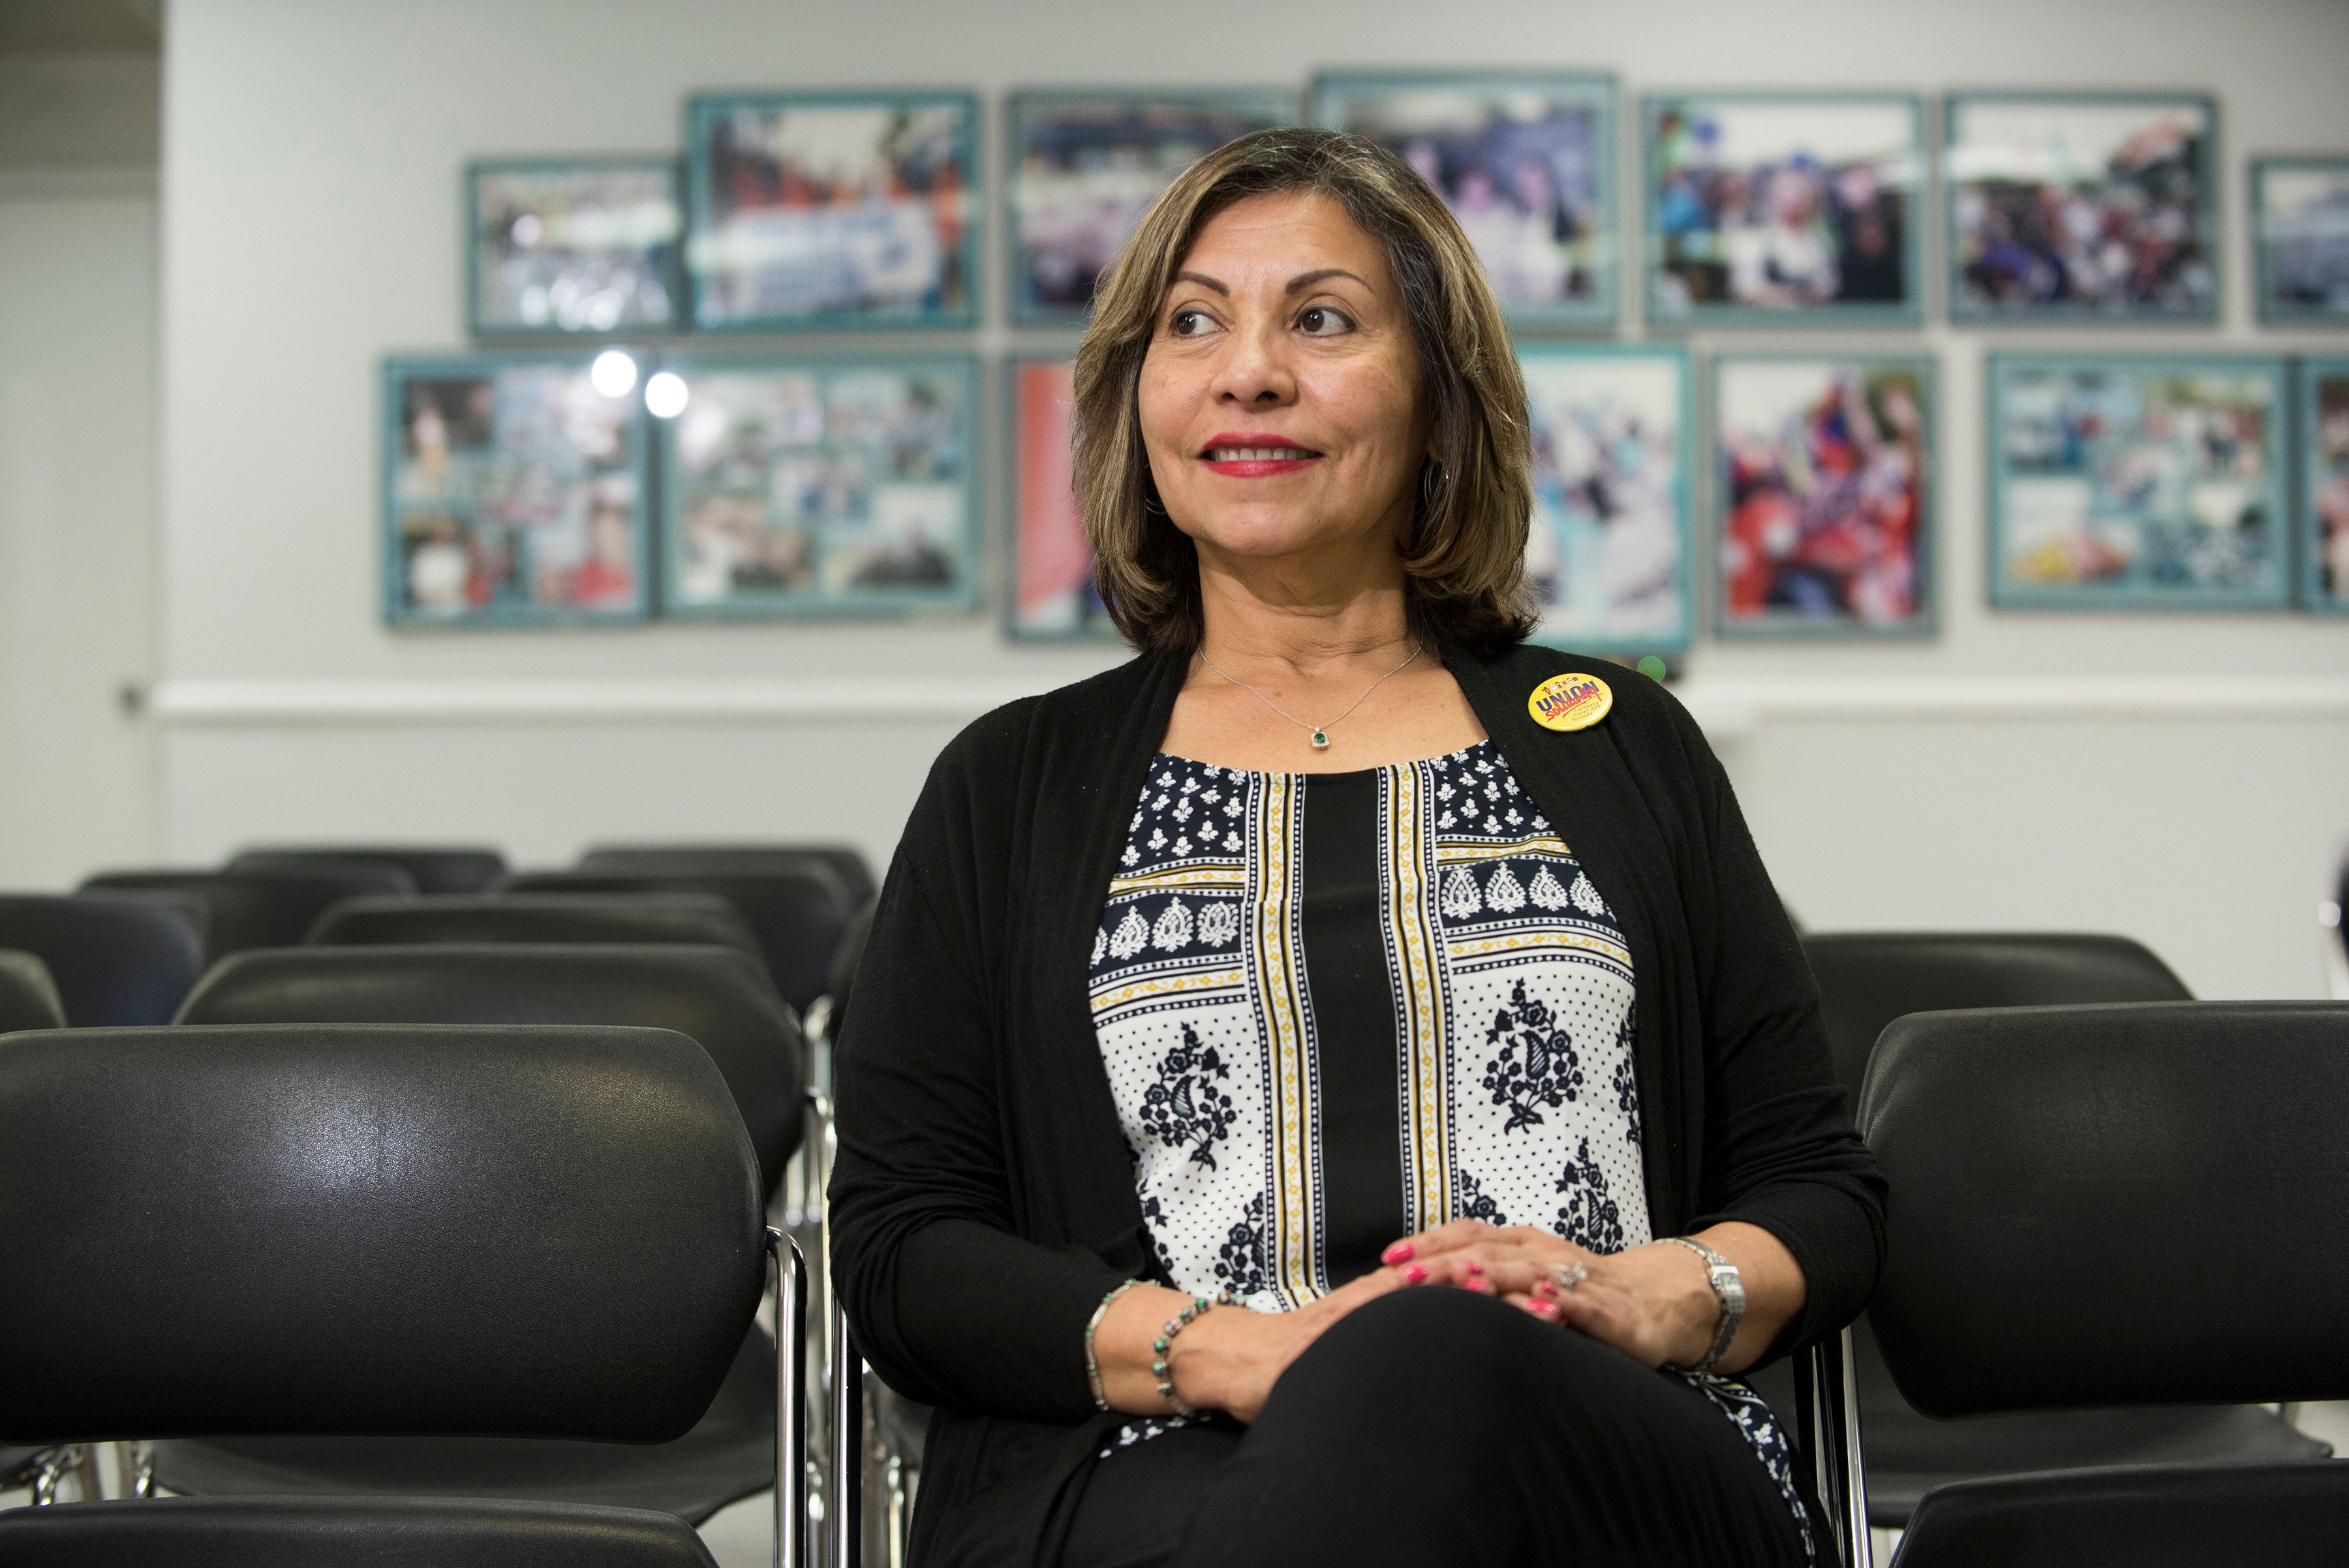 Geoconda Arguello-Kline, a native of Nigaragua and a former housekeeper, is now the top official at the Culinary Workers Unio